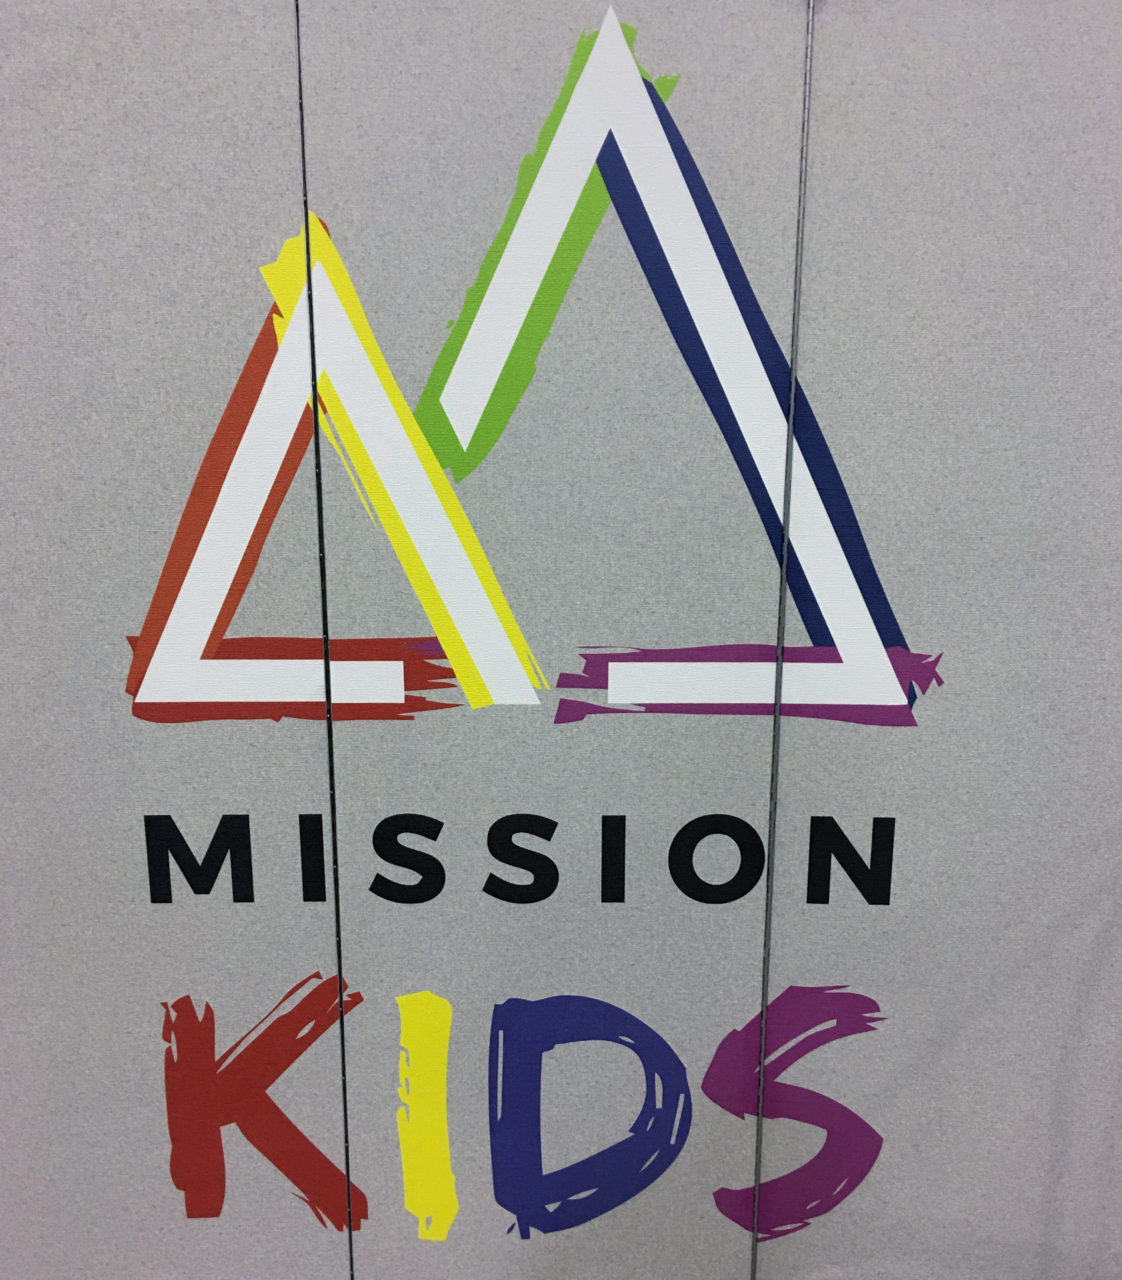 Colorful Mission Kids logo on a grey room divider